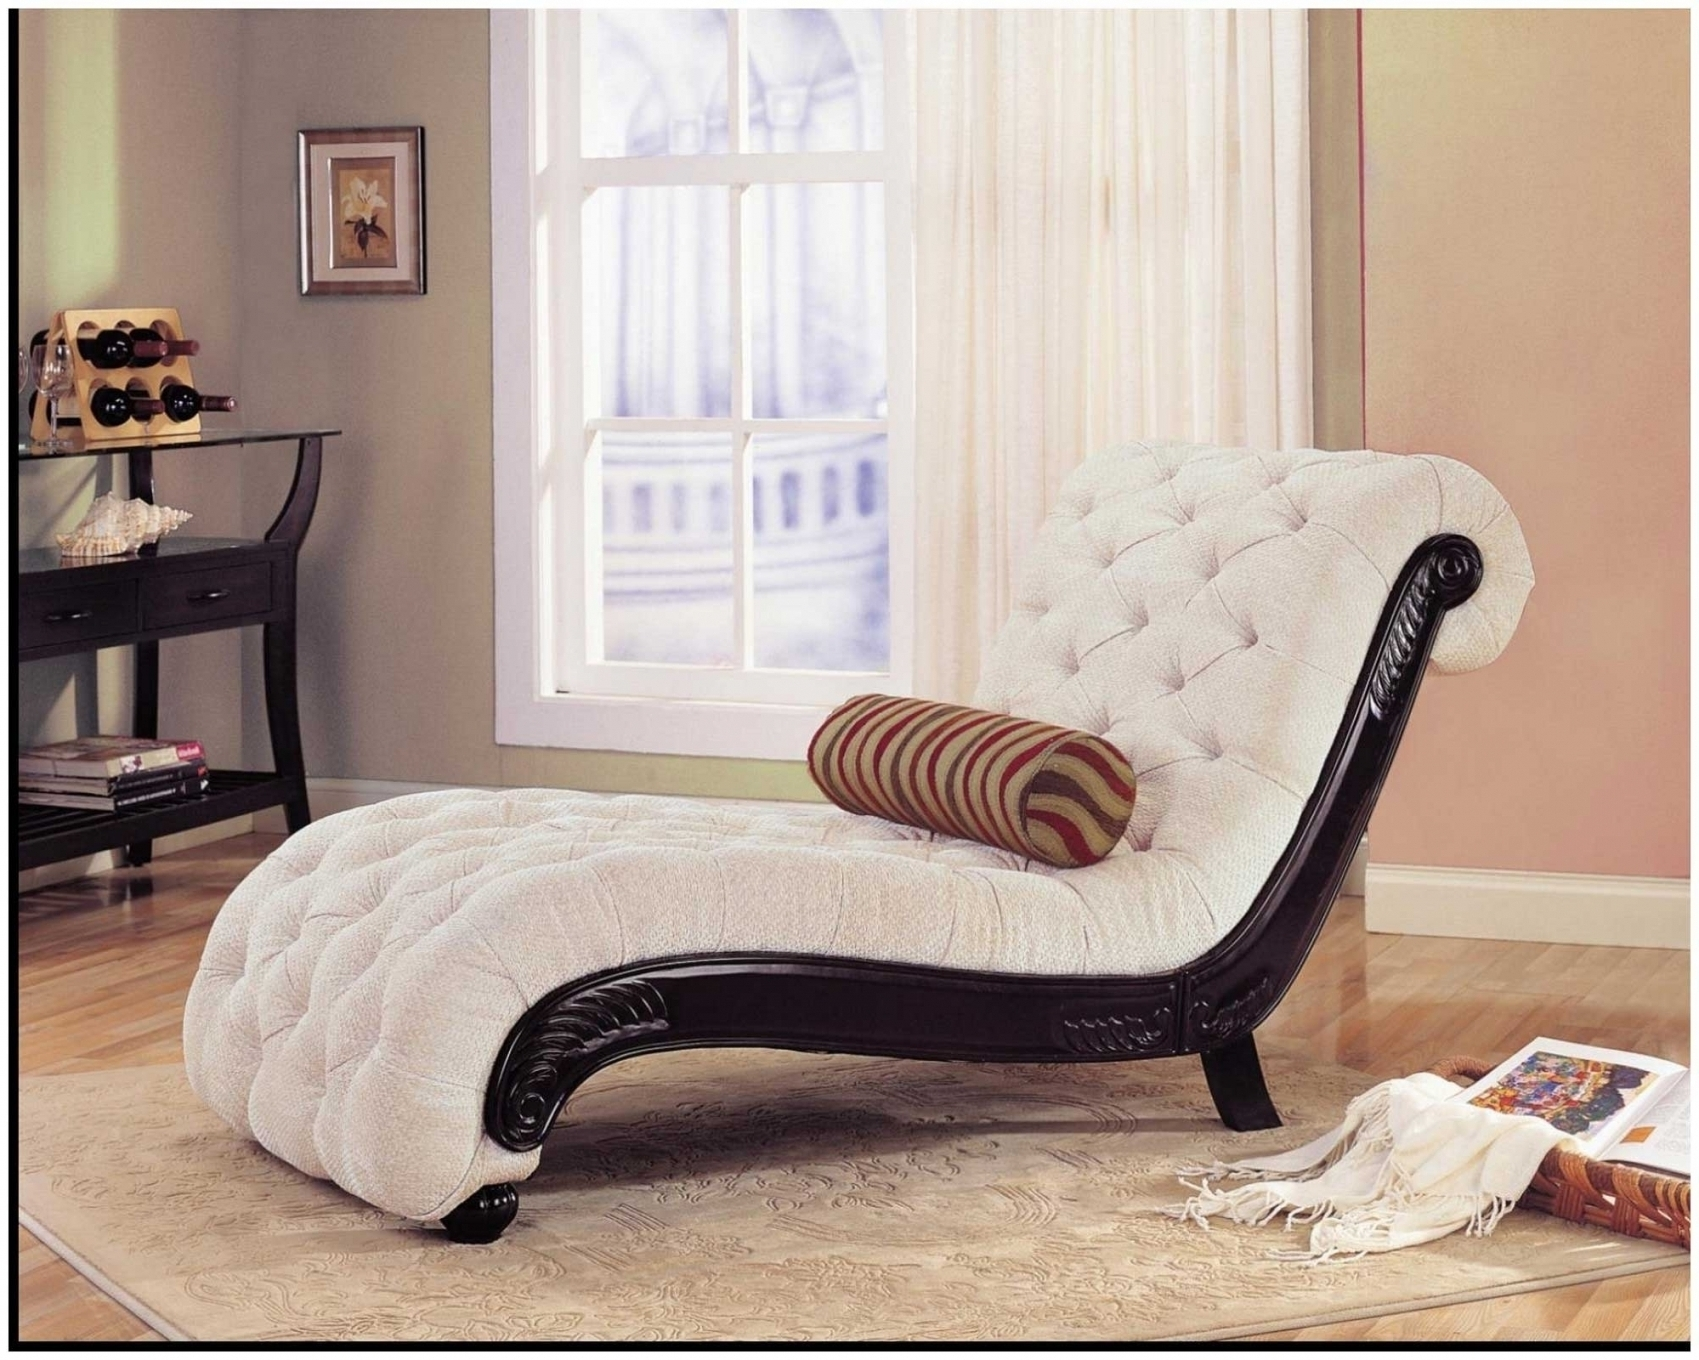 Most Recent Bedroom Chairs Indoor Chaise Lounge Chairs White Colour Indoor For Regarding Luxury Chaise Lounge Chairs (View 9 of 15)